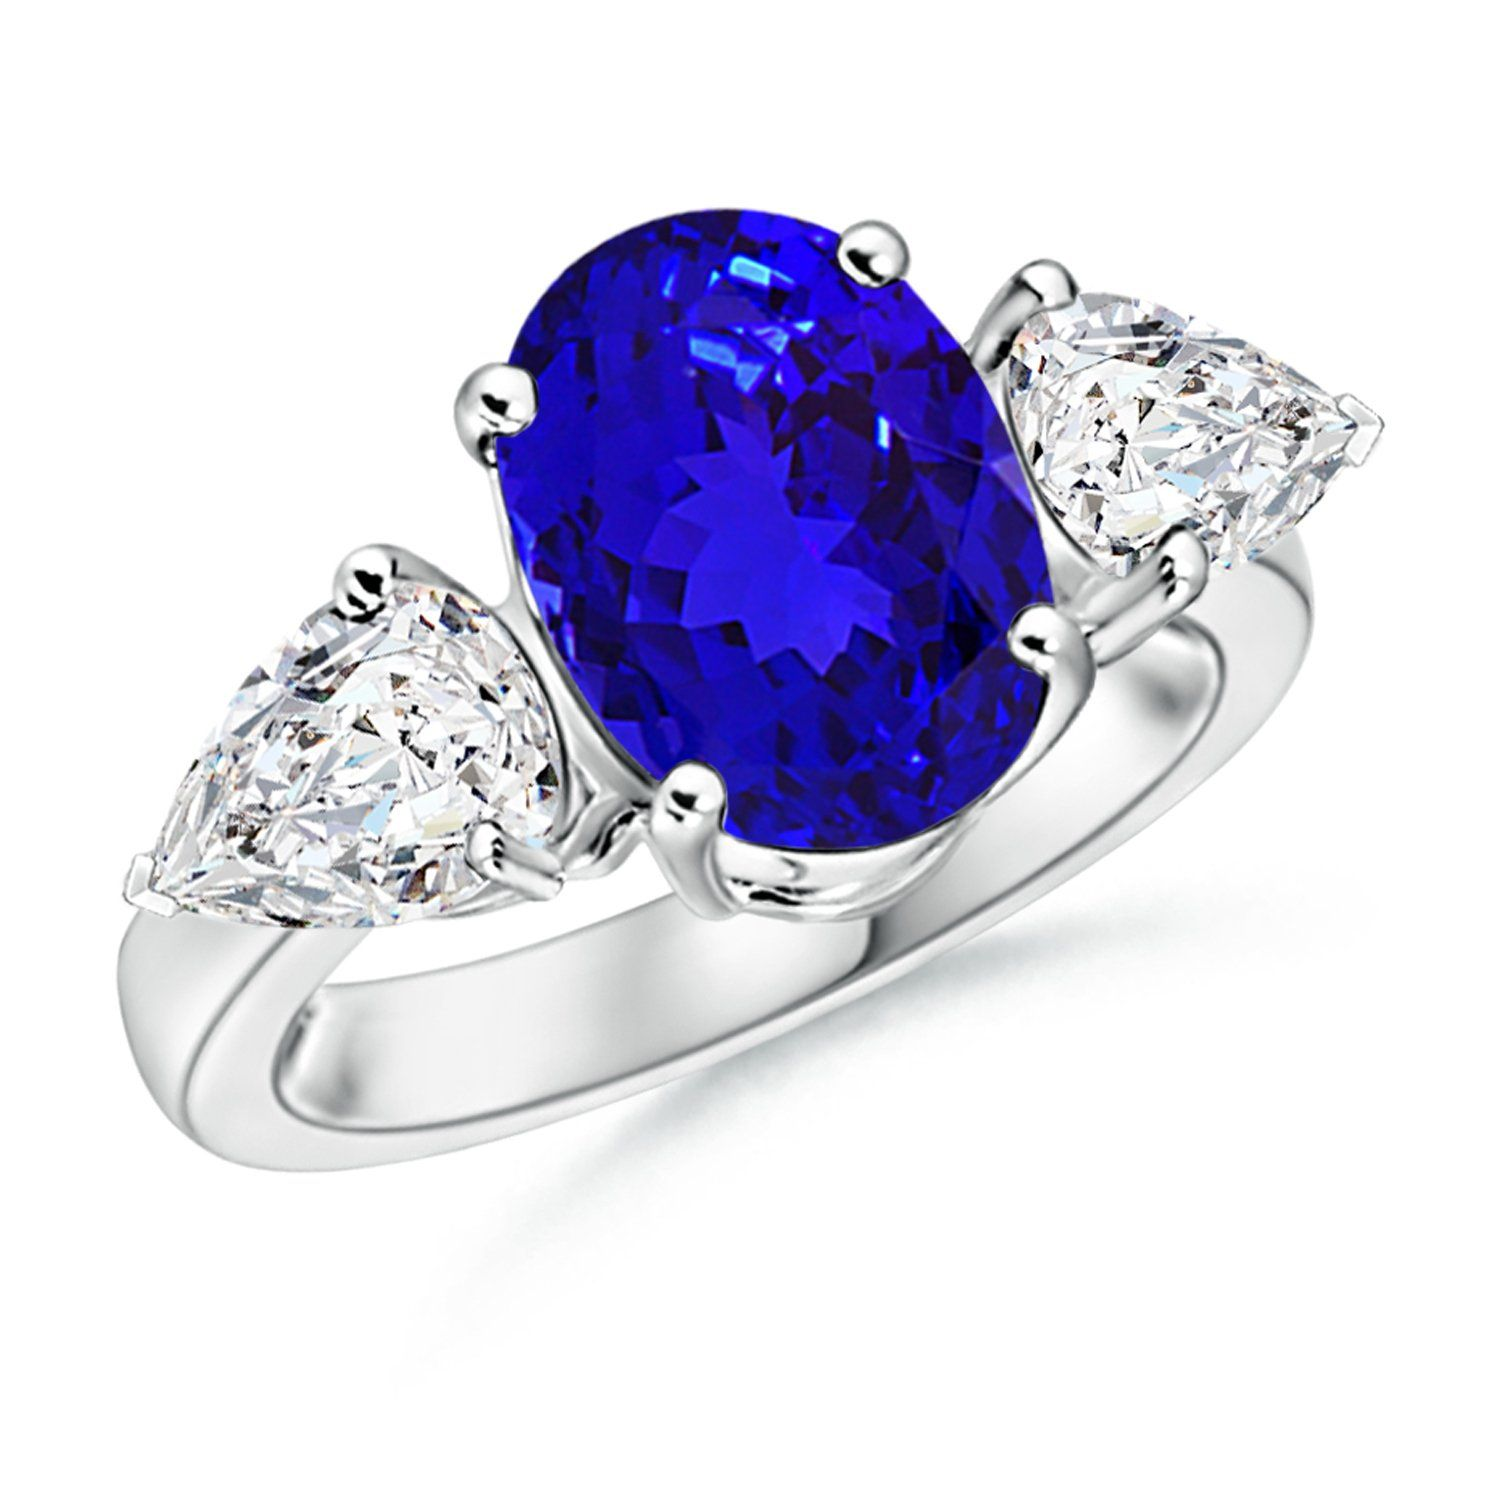 Angara Classic Trio Stone Tanzanite Diamond Solitaire Ring in 14k White Gold